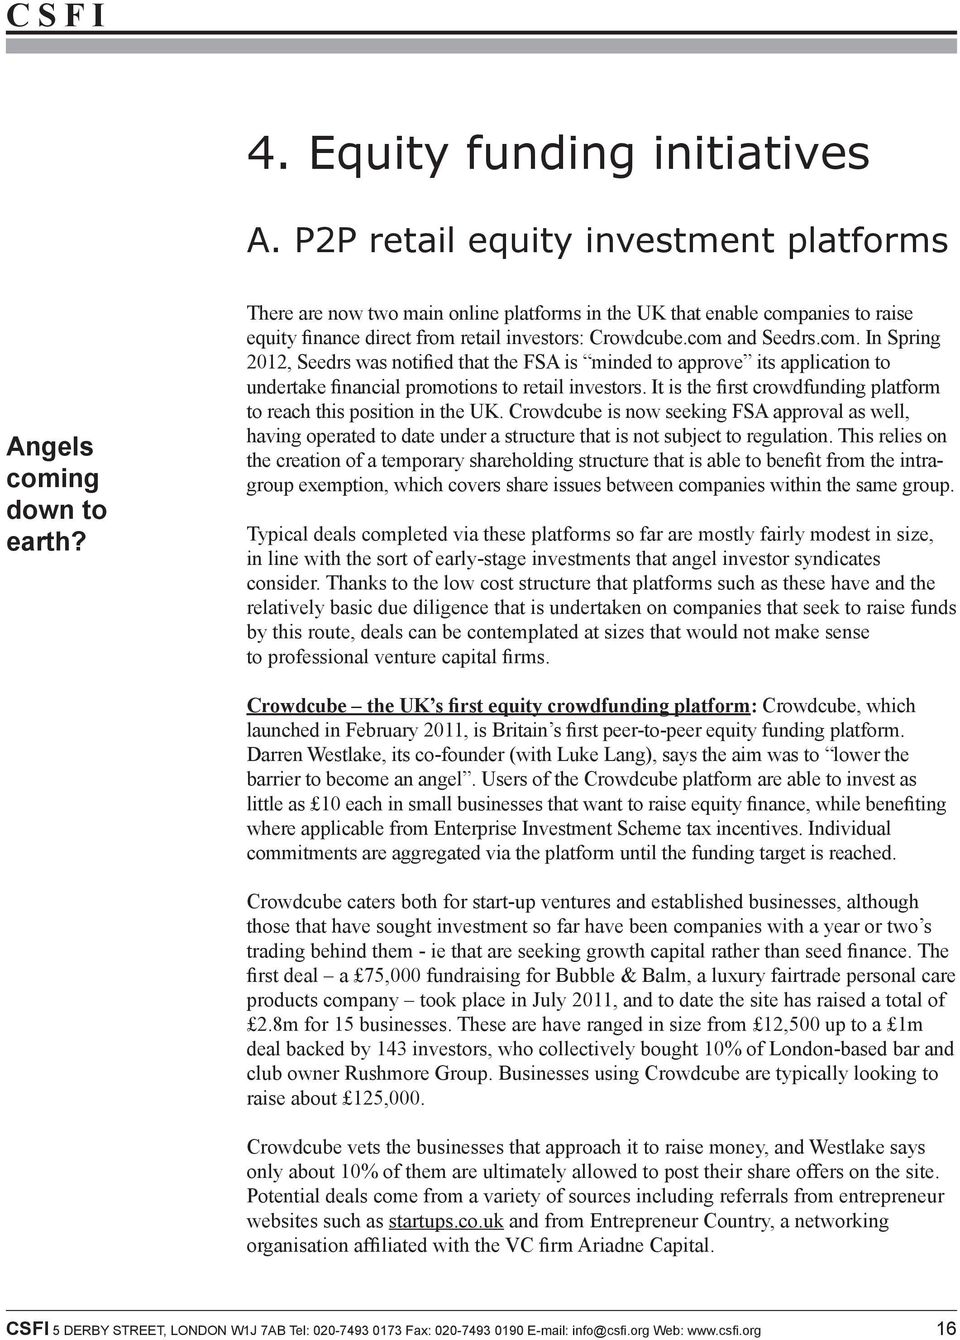 anies to raise equity finance direct from retail investors: Crowdcube.com